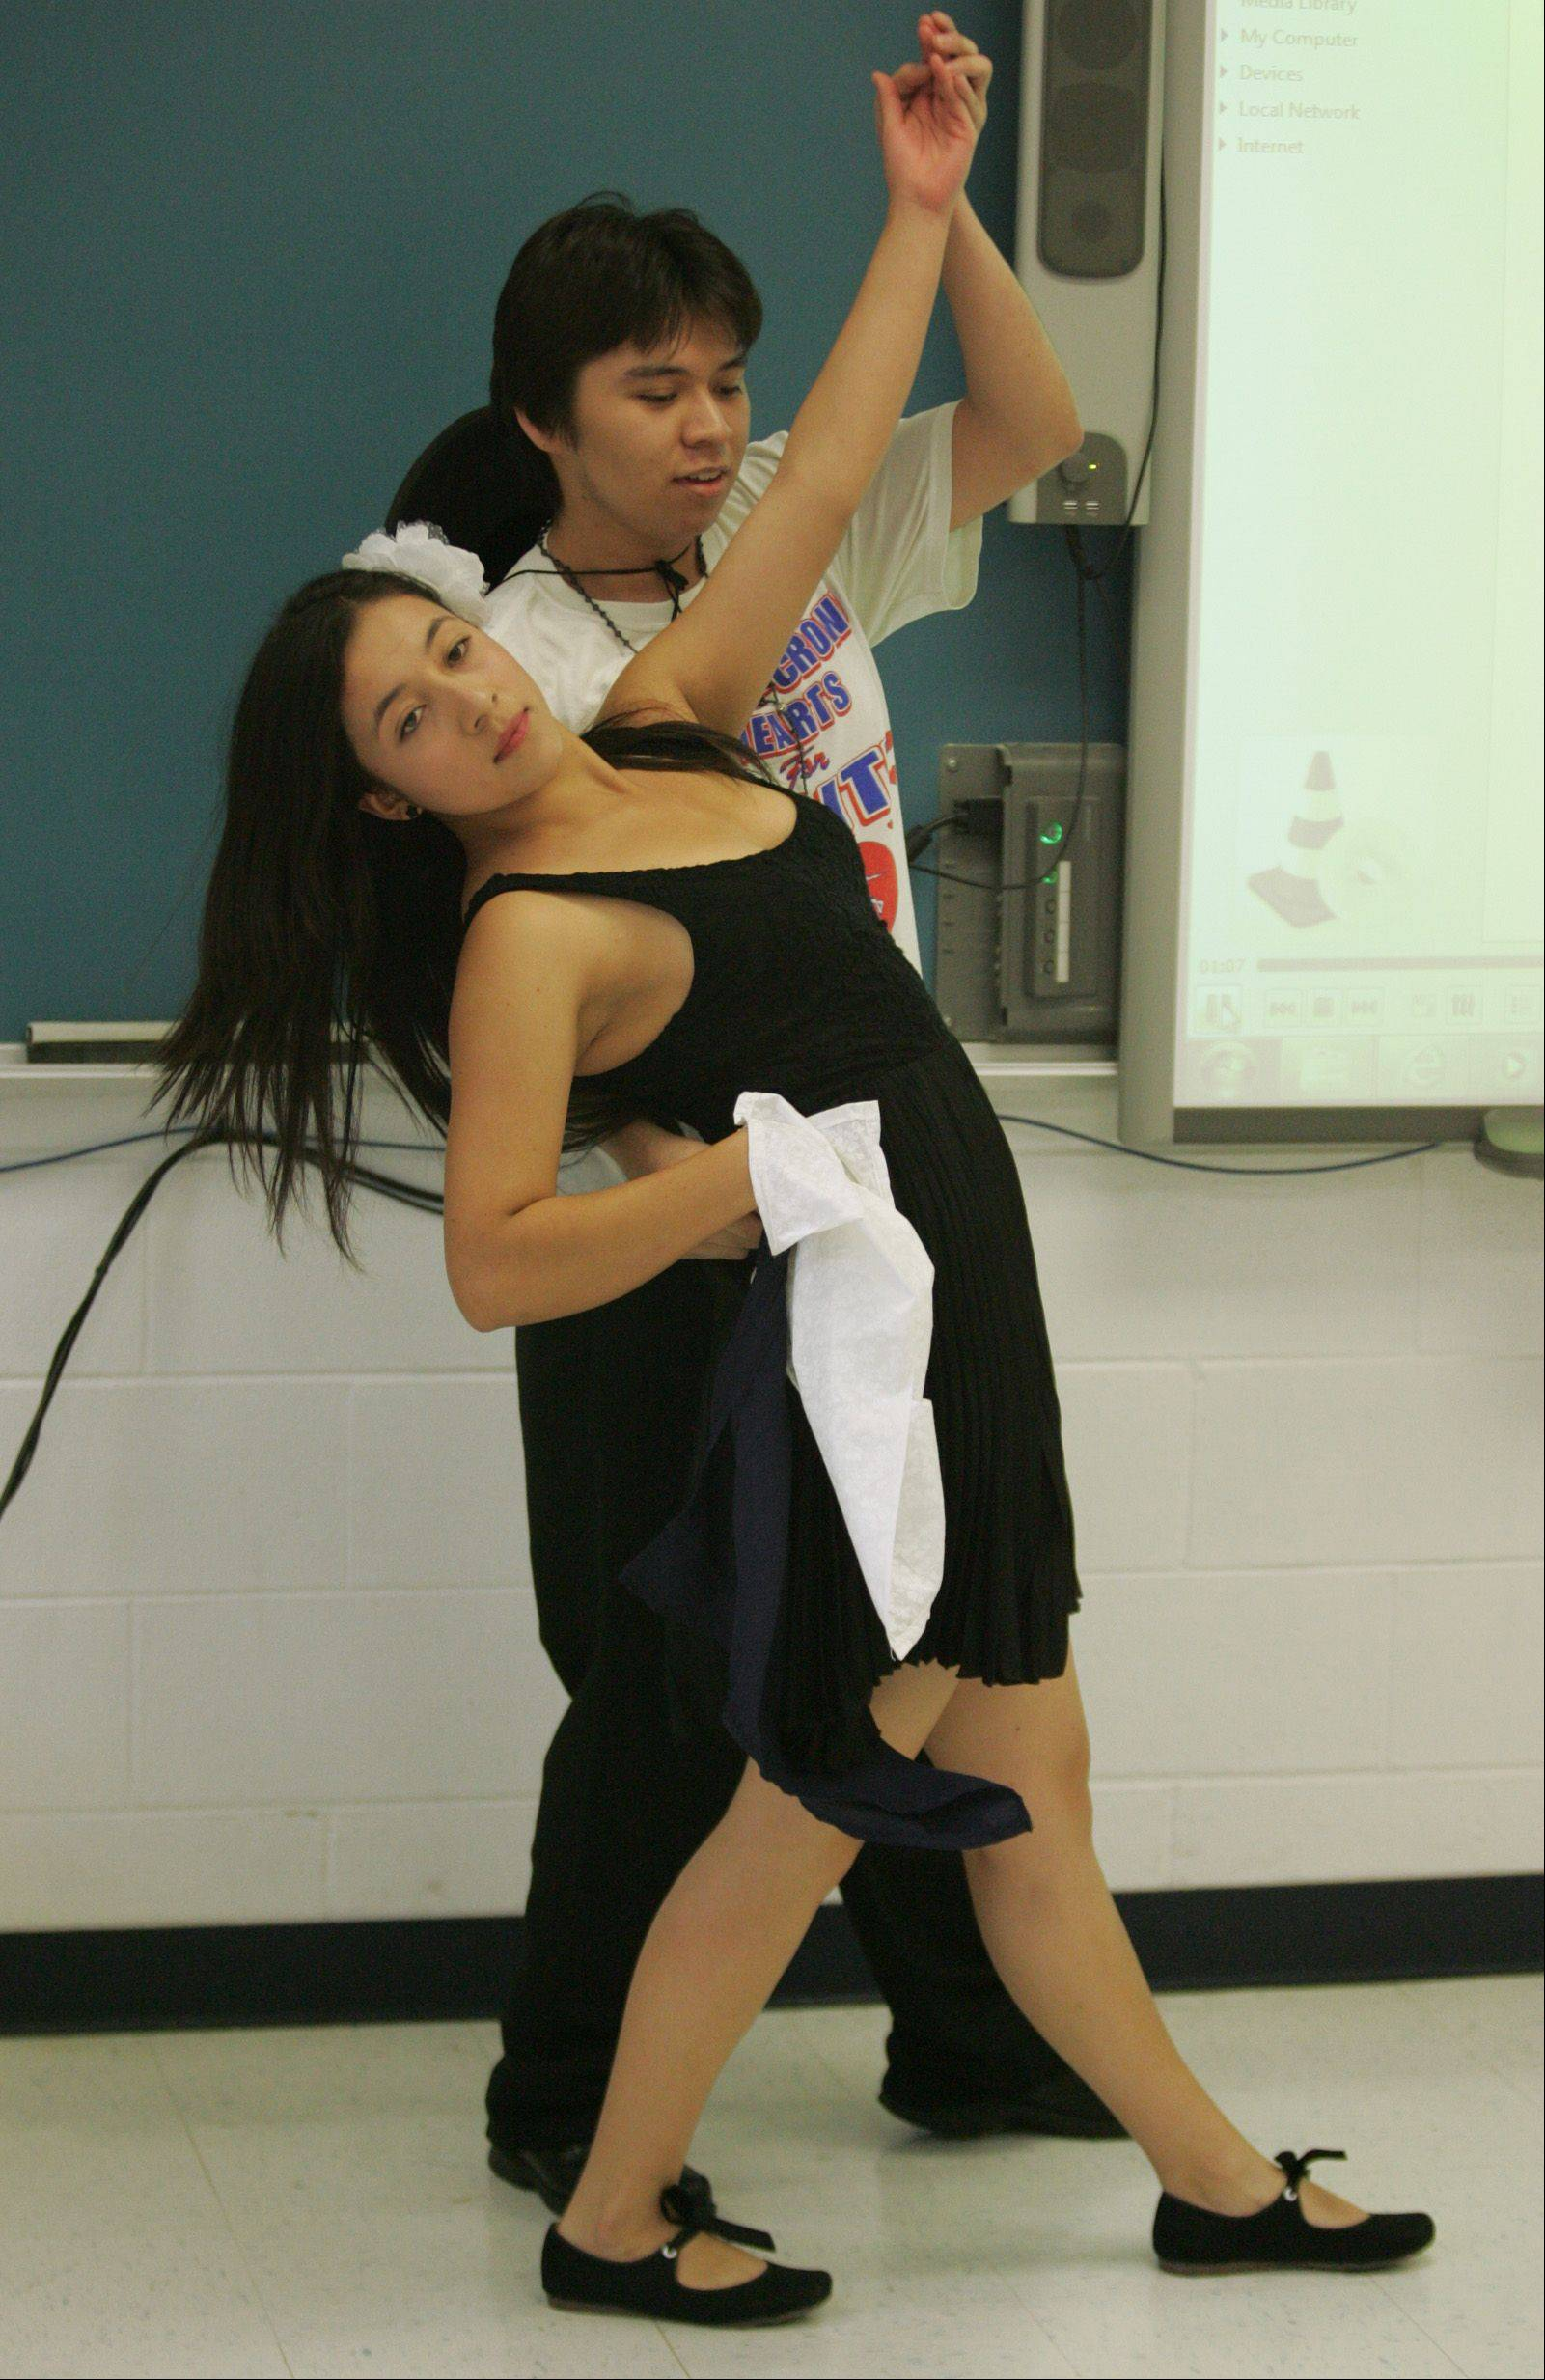 Dundee-Crown seniors Veronica Carrillo and Victor Alvarez rehearse an Argentinian dance number in preparation for the multicultural festival this weekend at Spring Hill Mall.